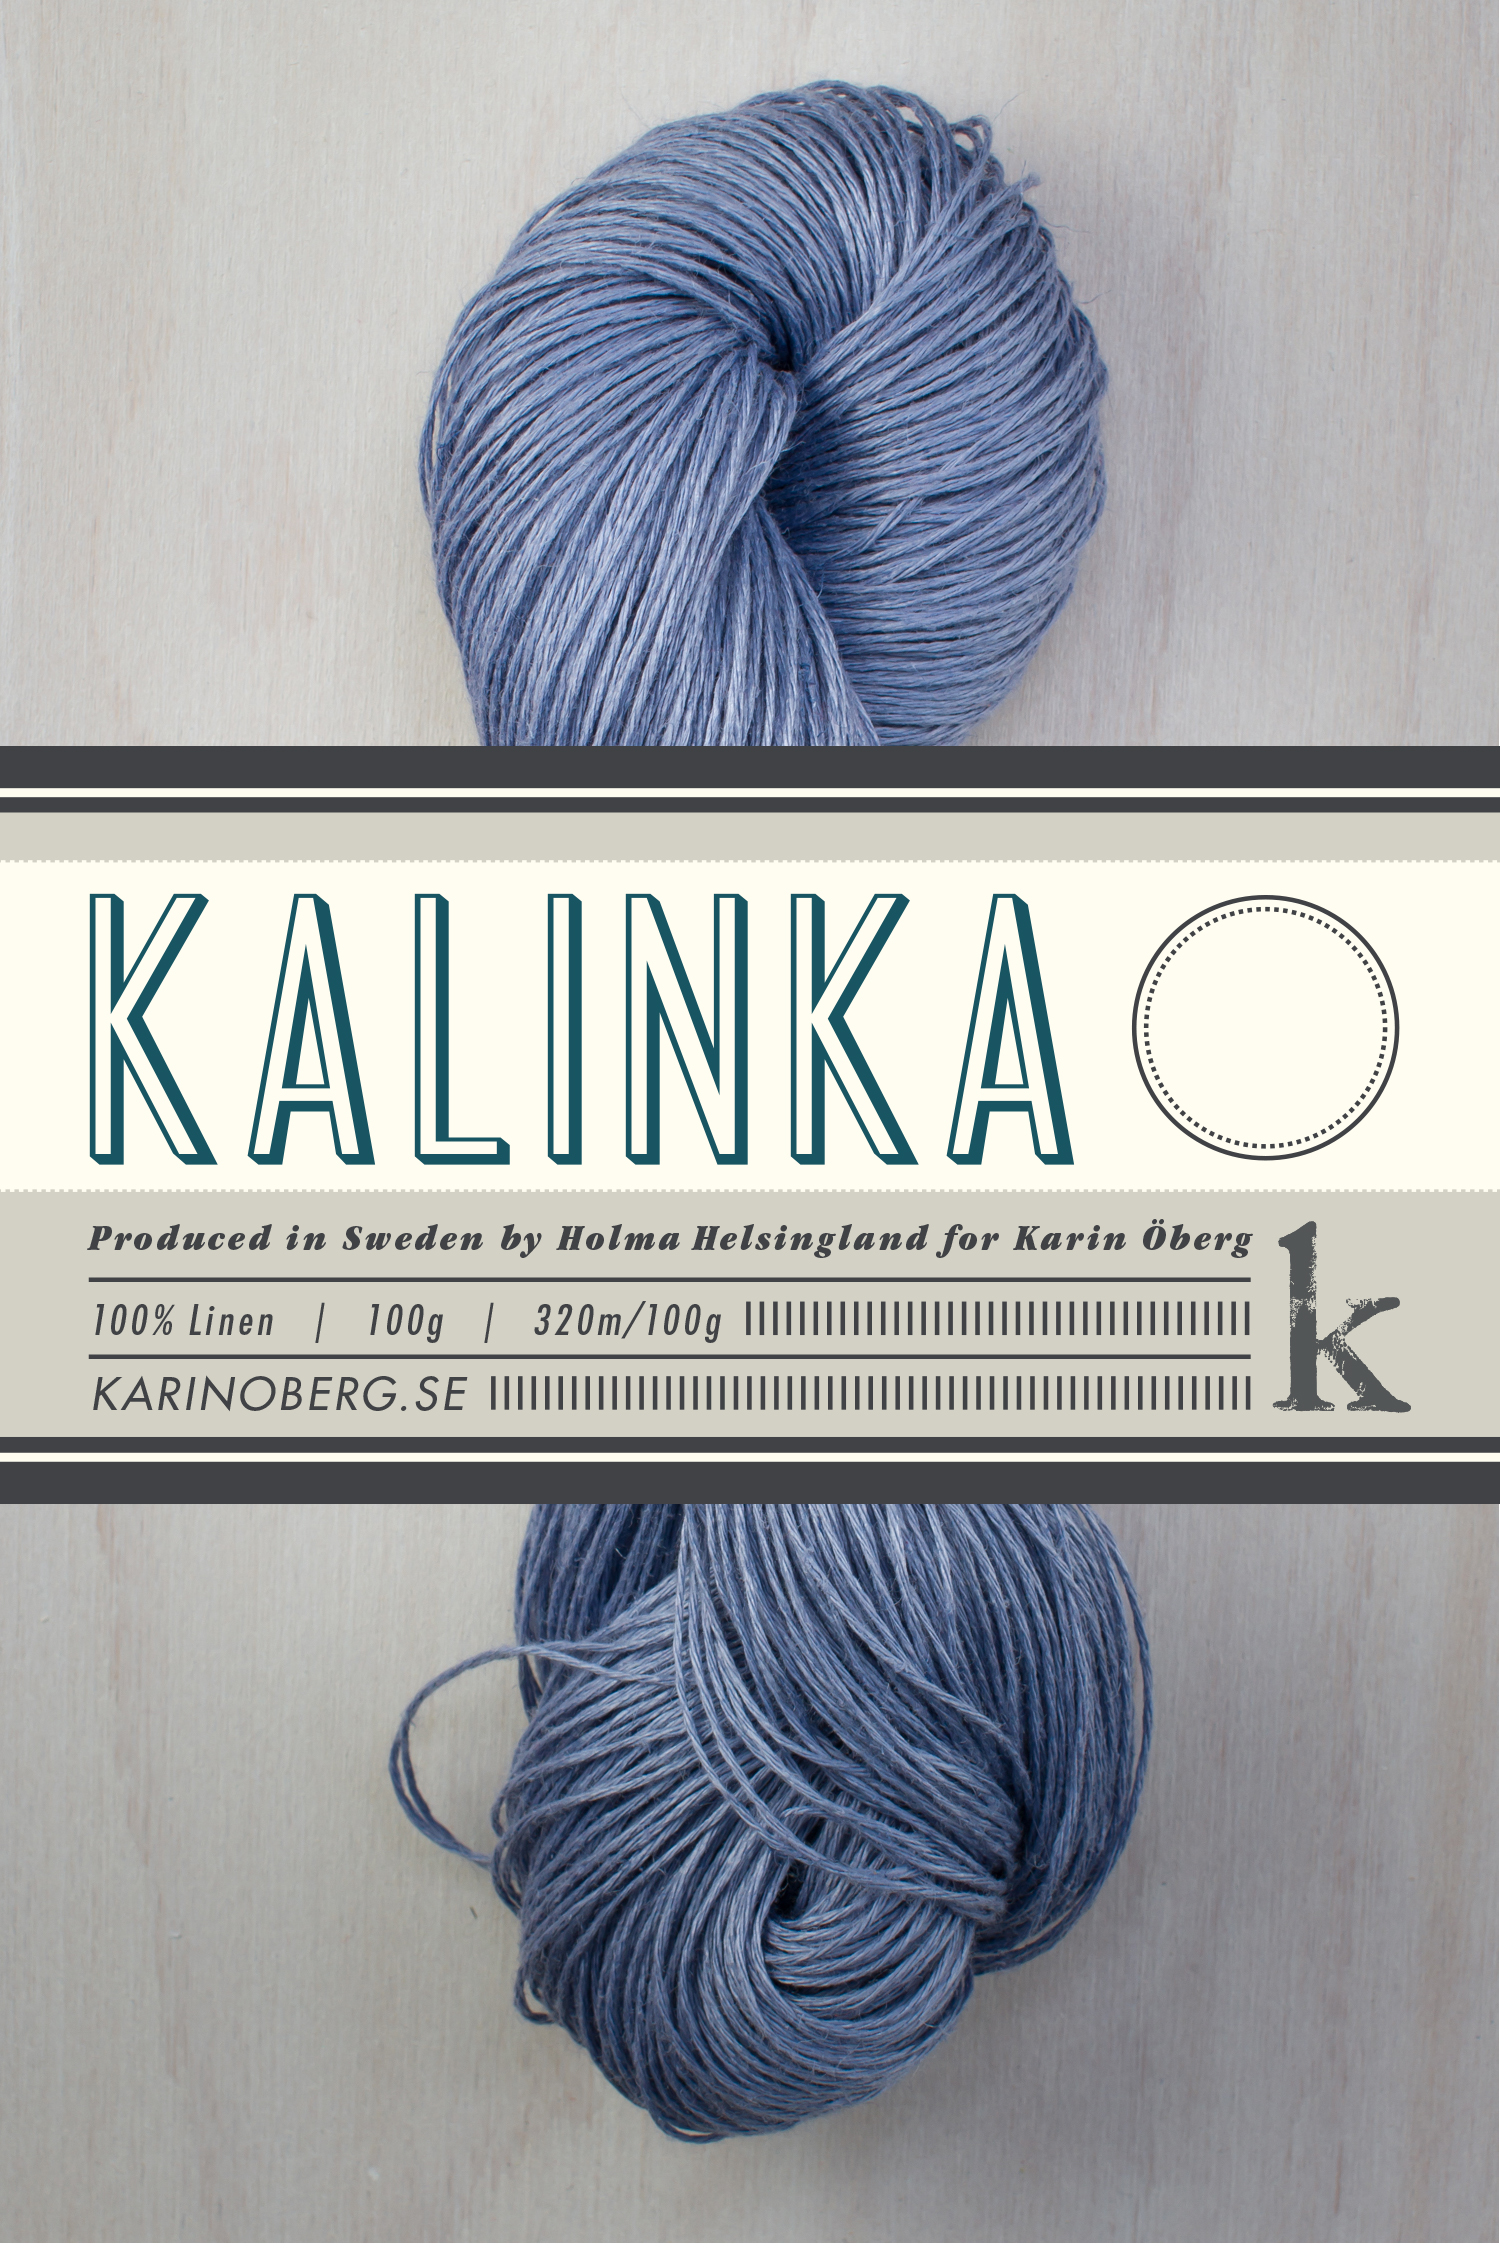 Kalinka, 100% linen (click picture for more colors)    In 1996 I started looking for a linen yarn that could be used for machine knitting. That turned out to be difficult, so instead I created Kalinka - a 4 ply linen yarn spun in a way that makes it great for both machine and hand knitting. Today Kalinka is available in 24 wonderful colors with retailers all over the world.   Yarn facts   320sts/100g, gauge 27sts/10cm on 2,5mm needles, 24sts/10cm on 3mm needles    Washing instructions  Machine wash cold or hand wash with normal cycle. Hot iron.